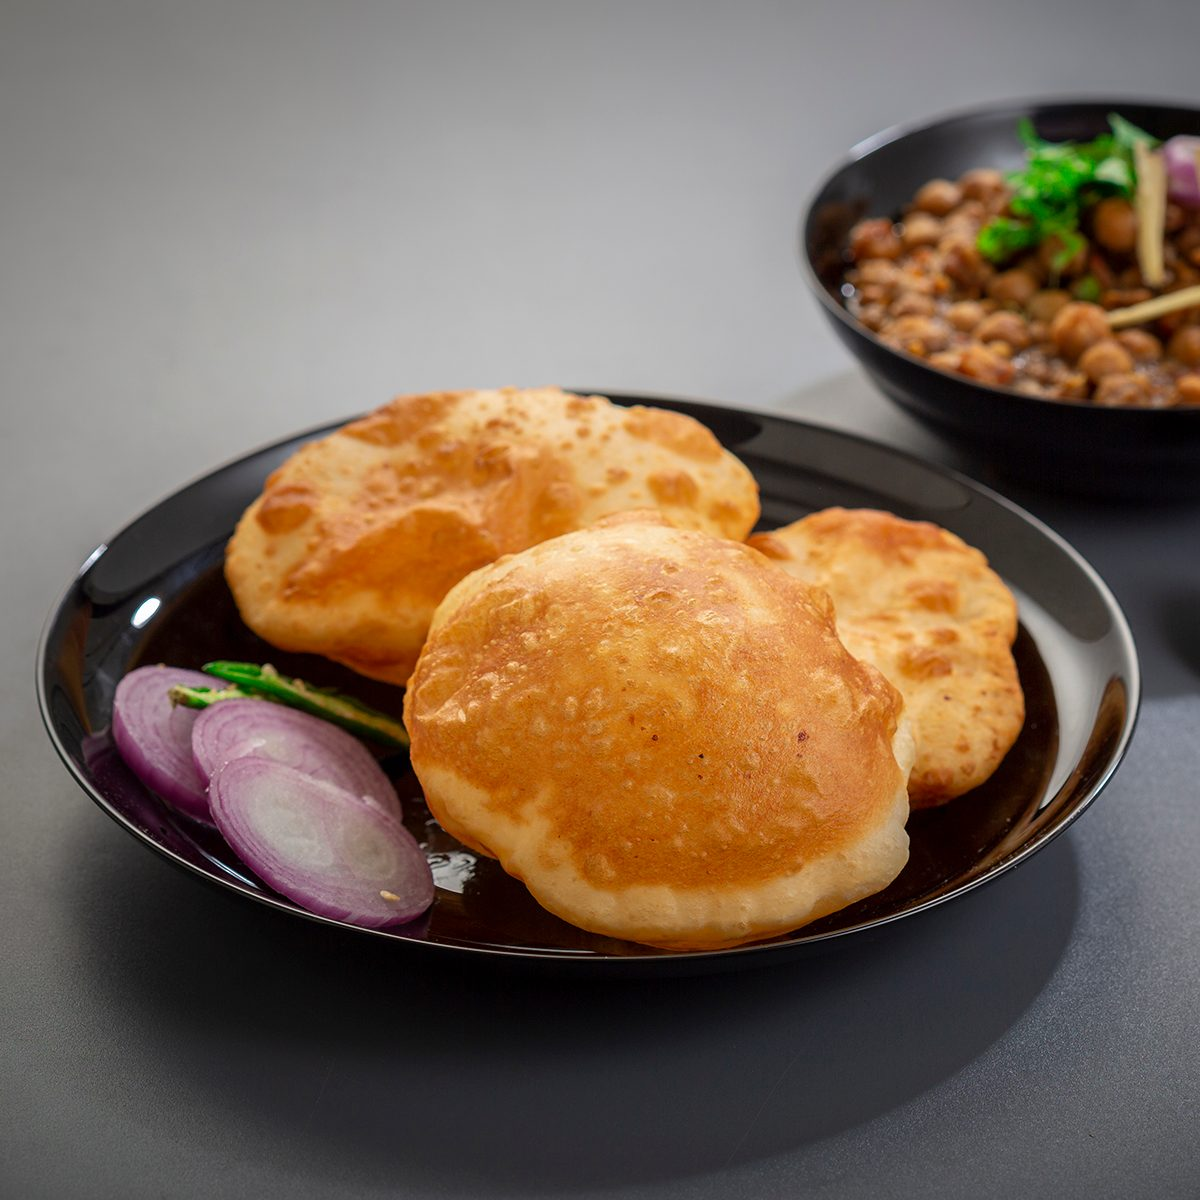 choley bhature is a dish originated initially in the northern part of the Indian subcontinent. It is a combination of chana masala and bhatura, a fried bread made from maida.